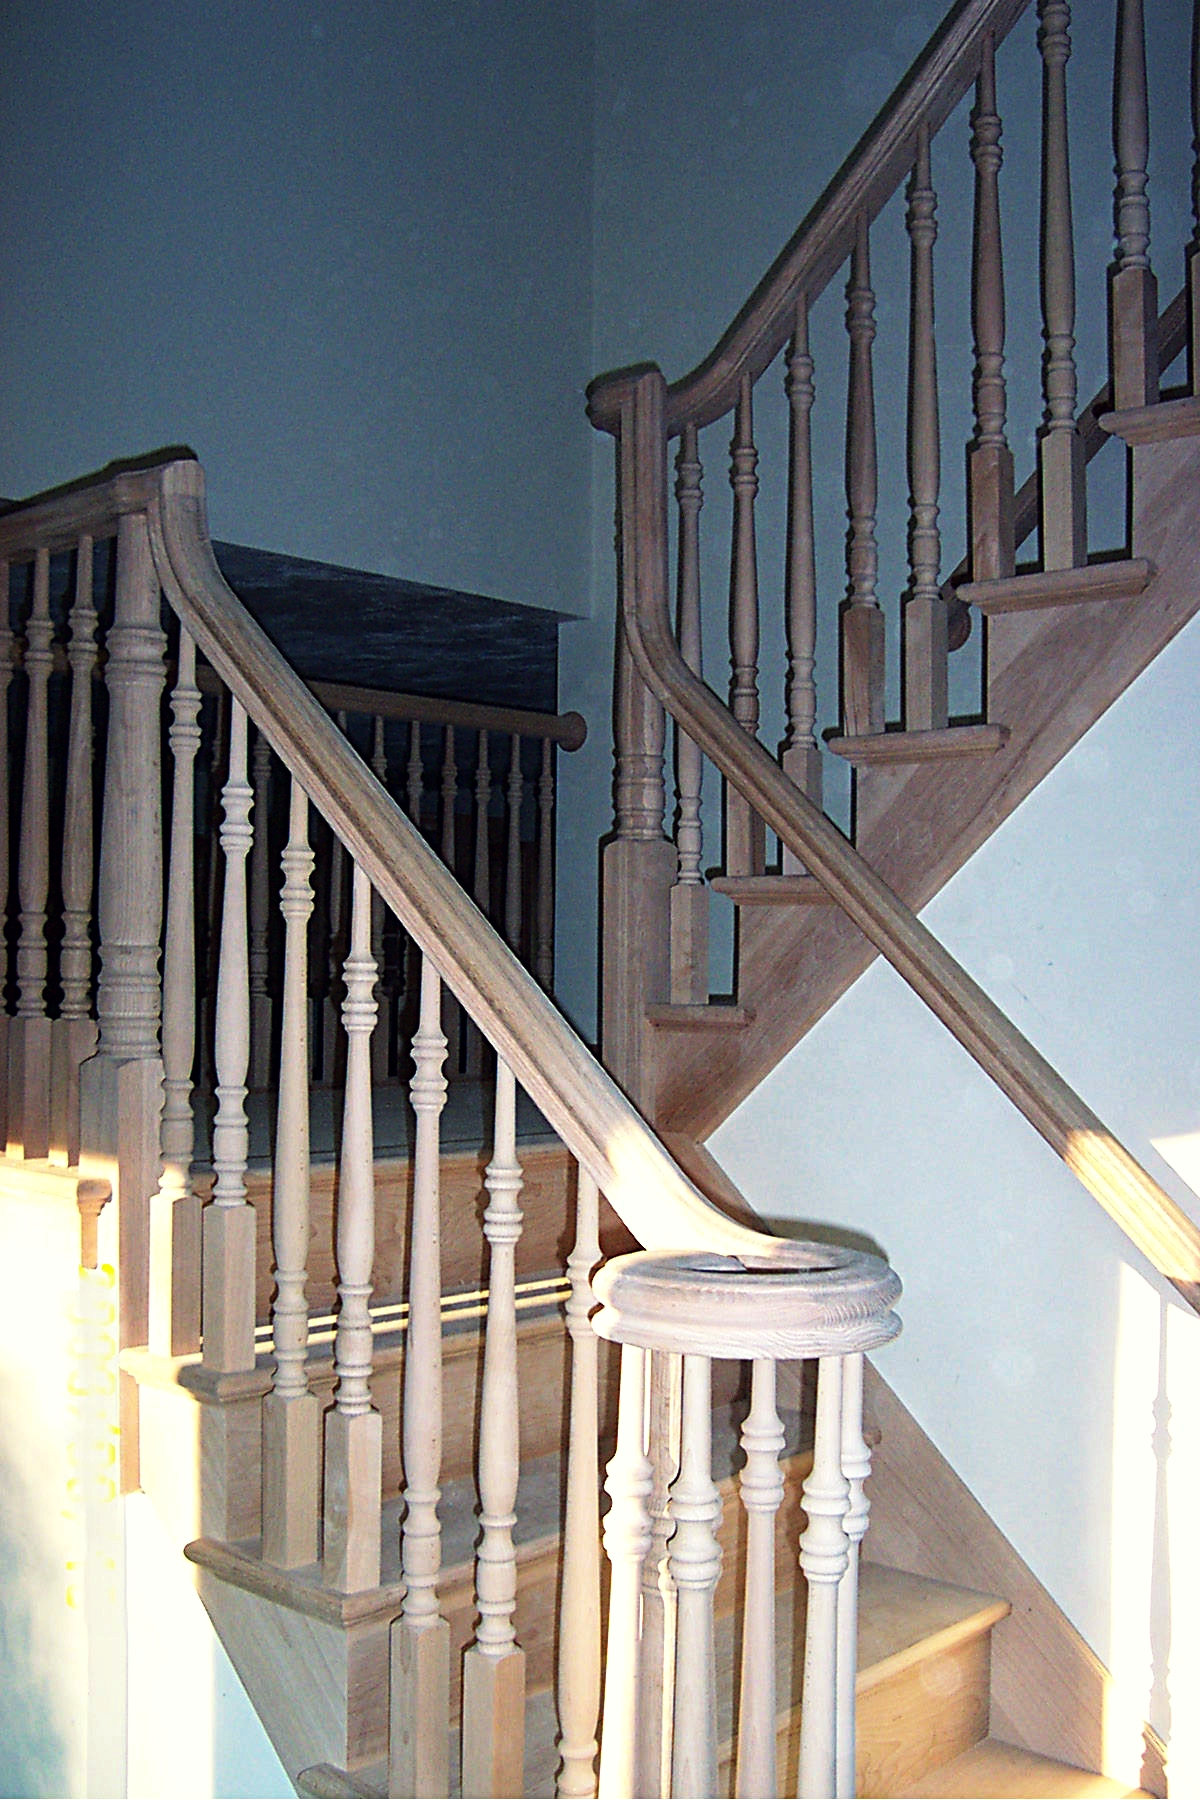 curly banister adjusted.jpg